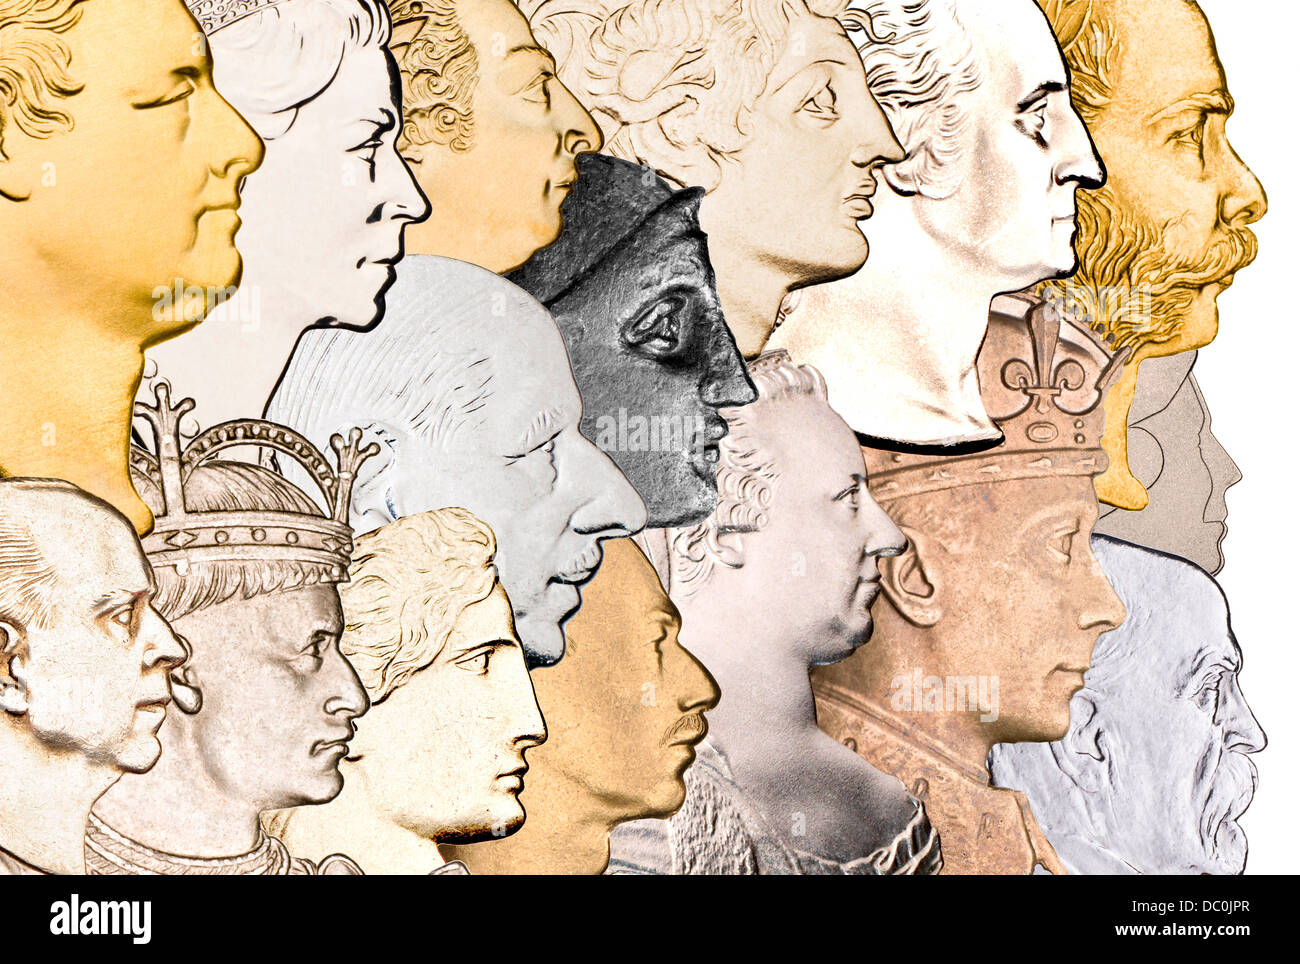 Profile Portraits of various monarchs and historical figures taken from coins. - Stock Image